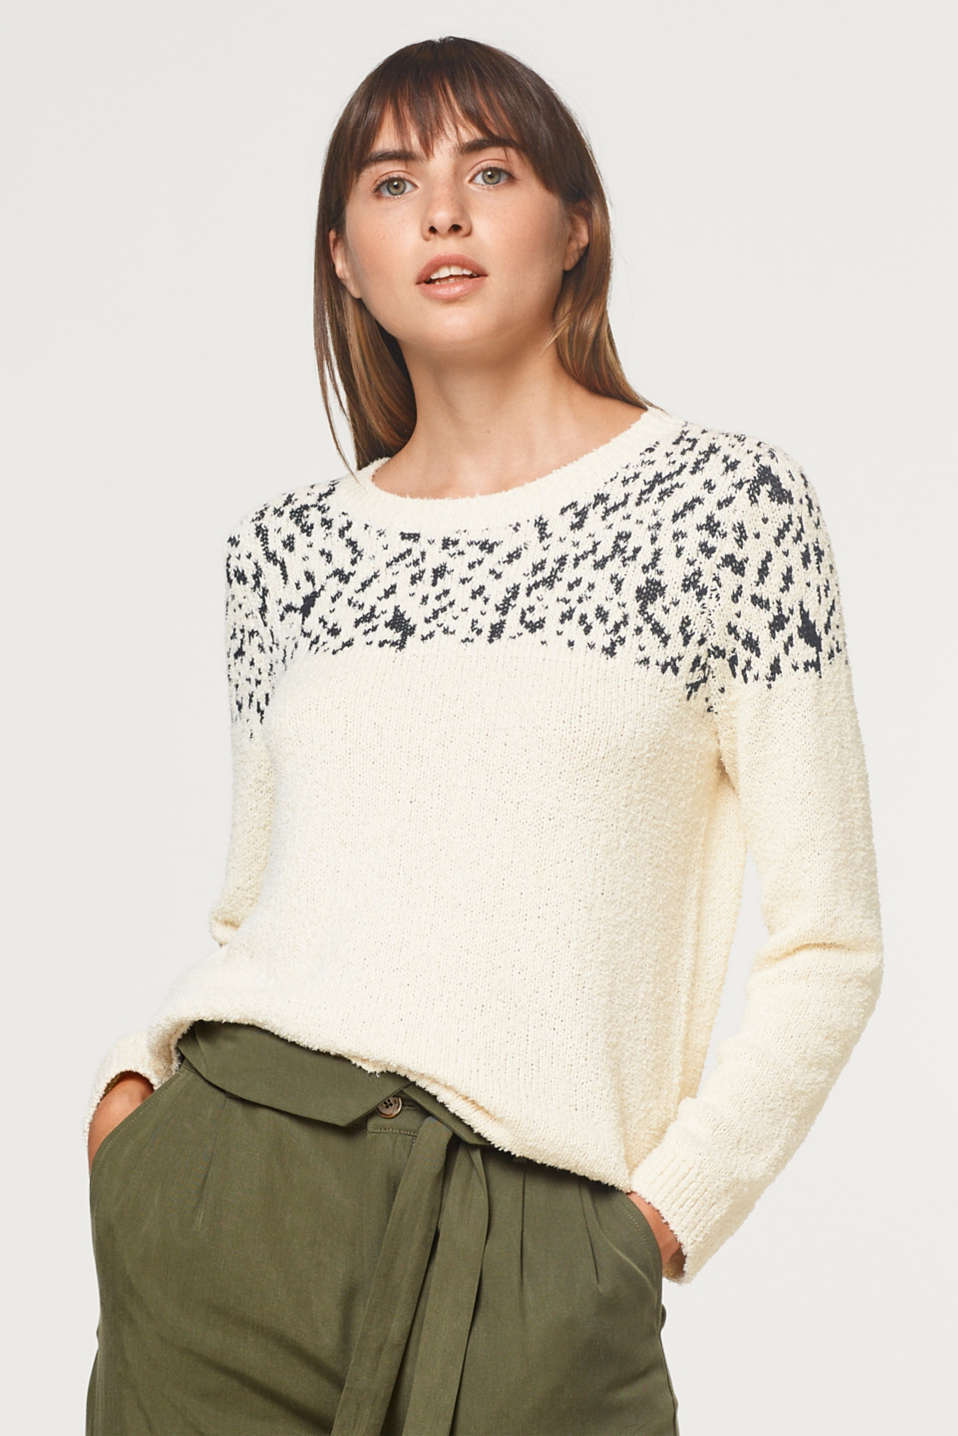 Esprit - Jumper with jacquard pattern